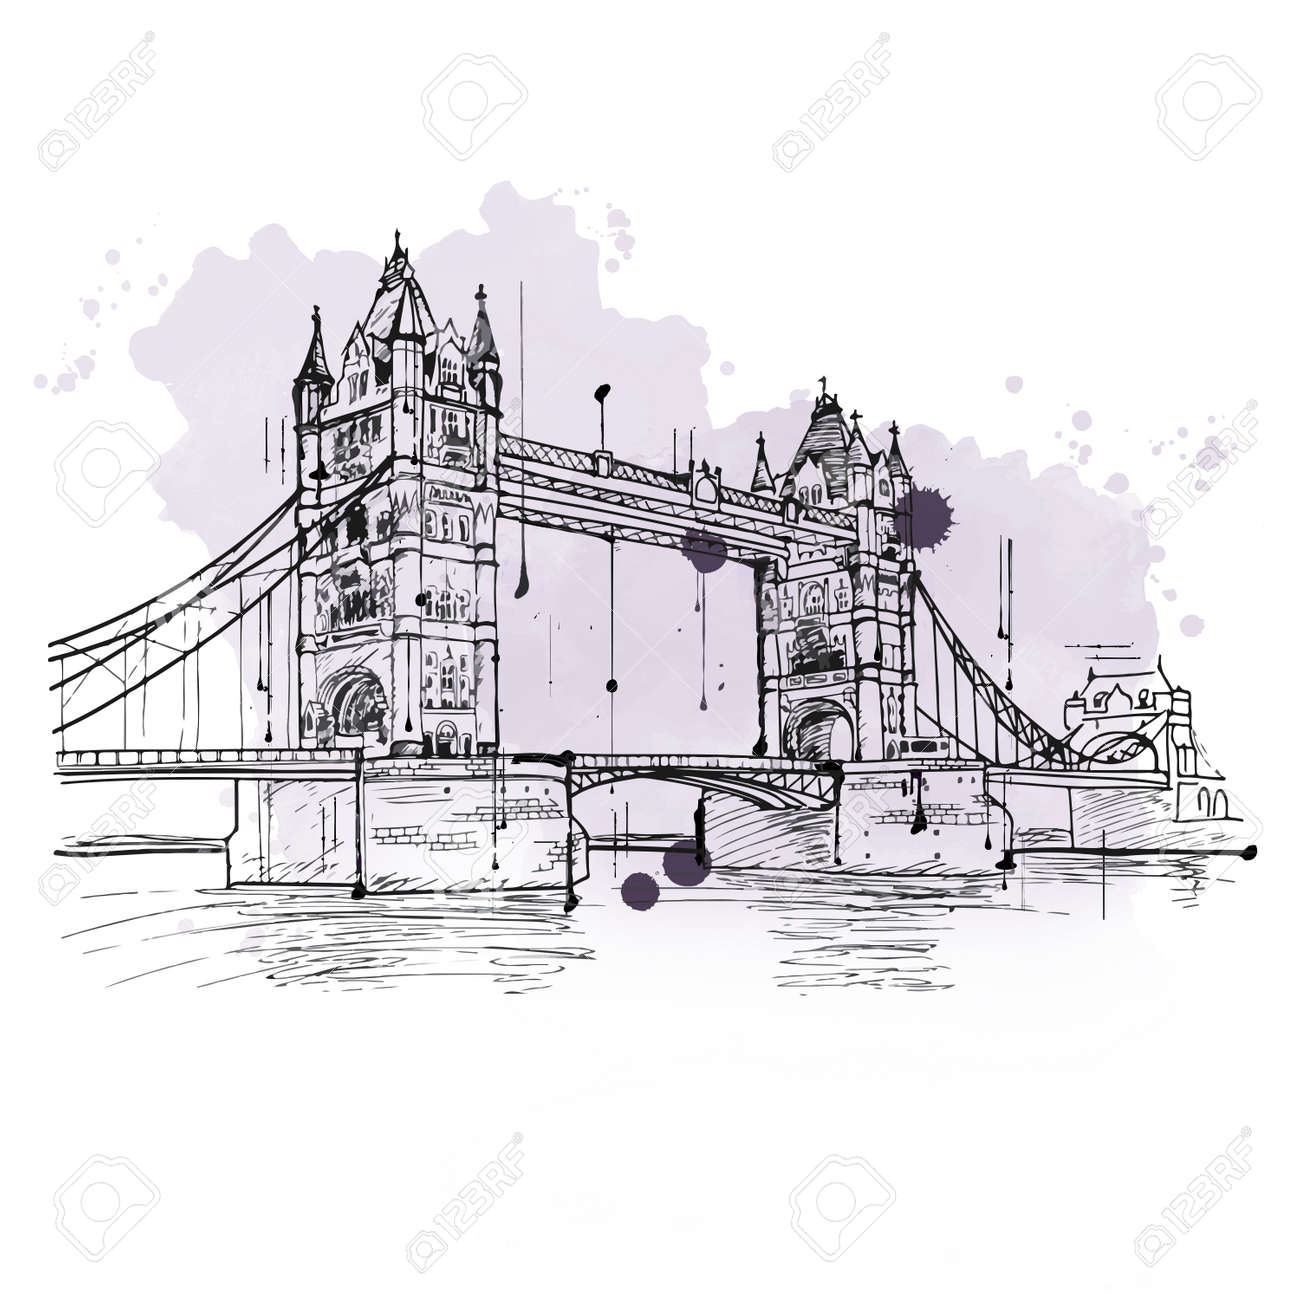 Artistic Hand Drawn Sketch Of The Tower Bridge London Crossing River Thames With Its